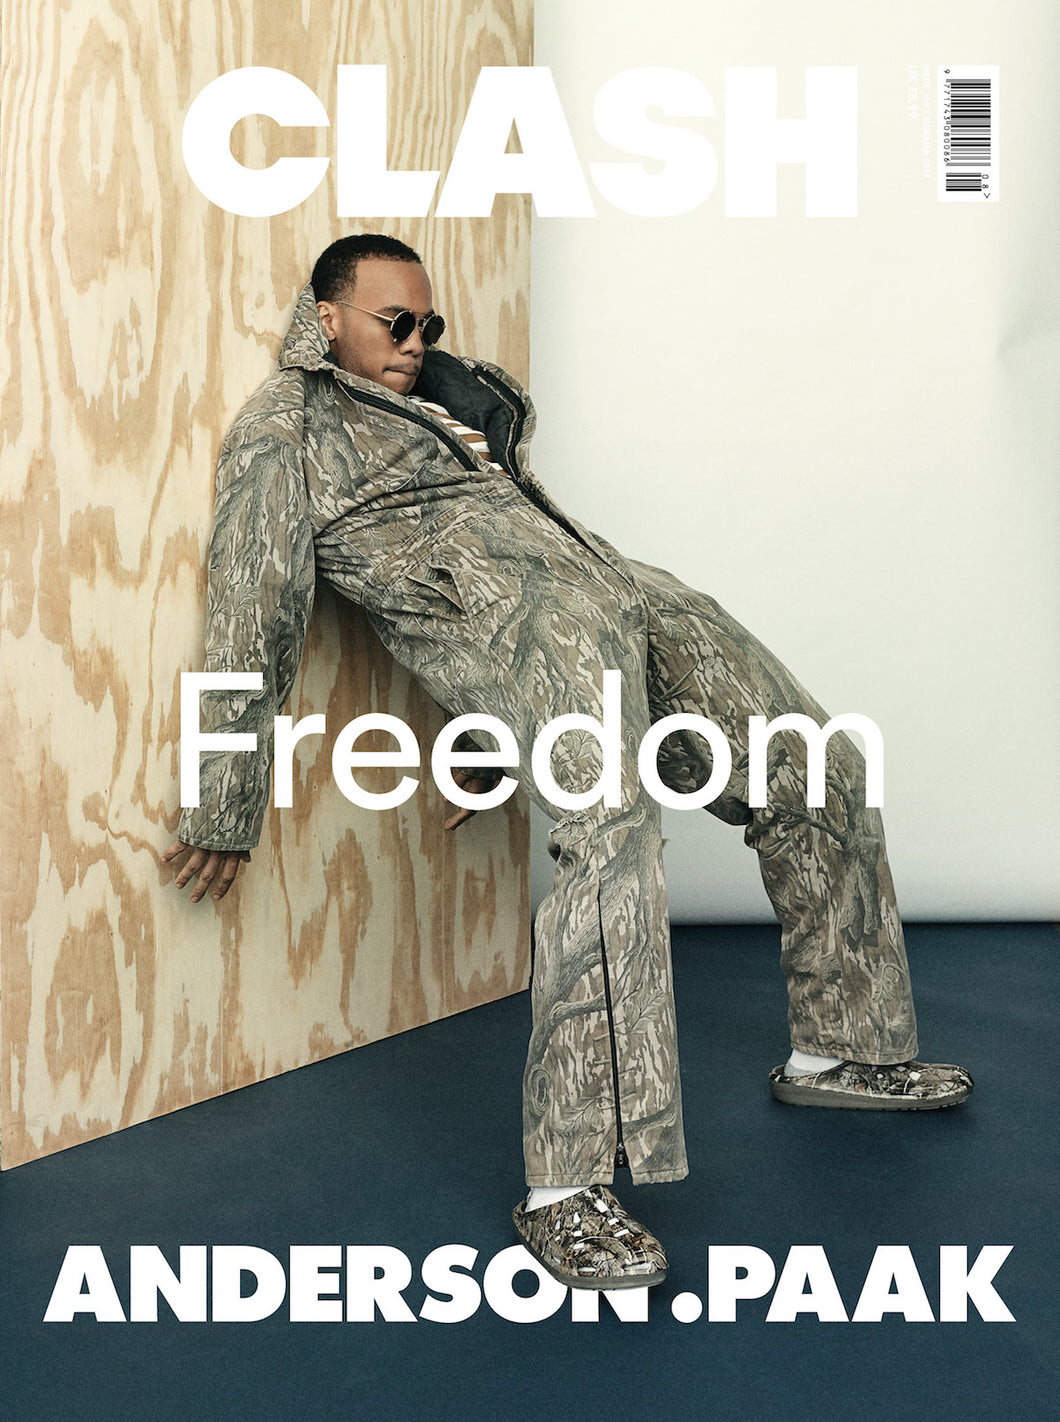 Clash Issue 108 Anderson .Paak